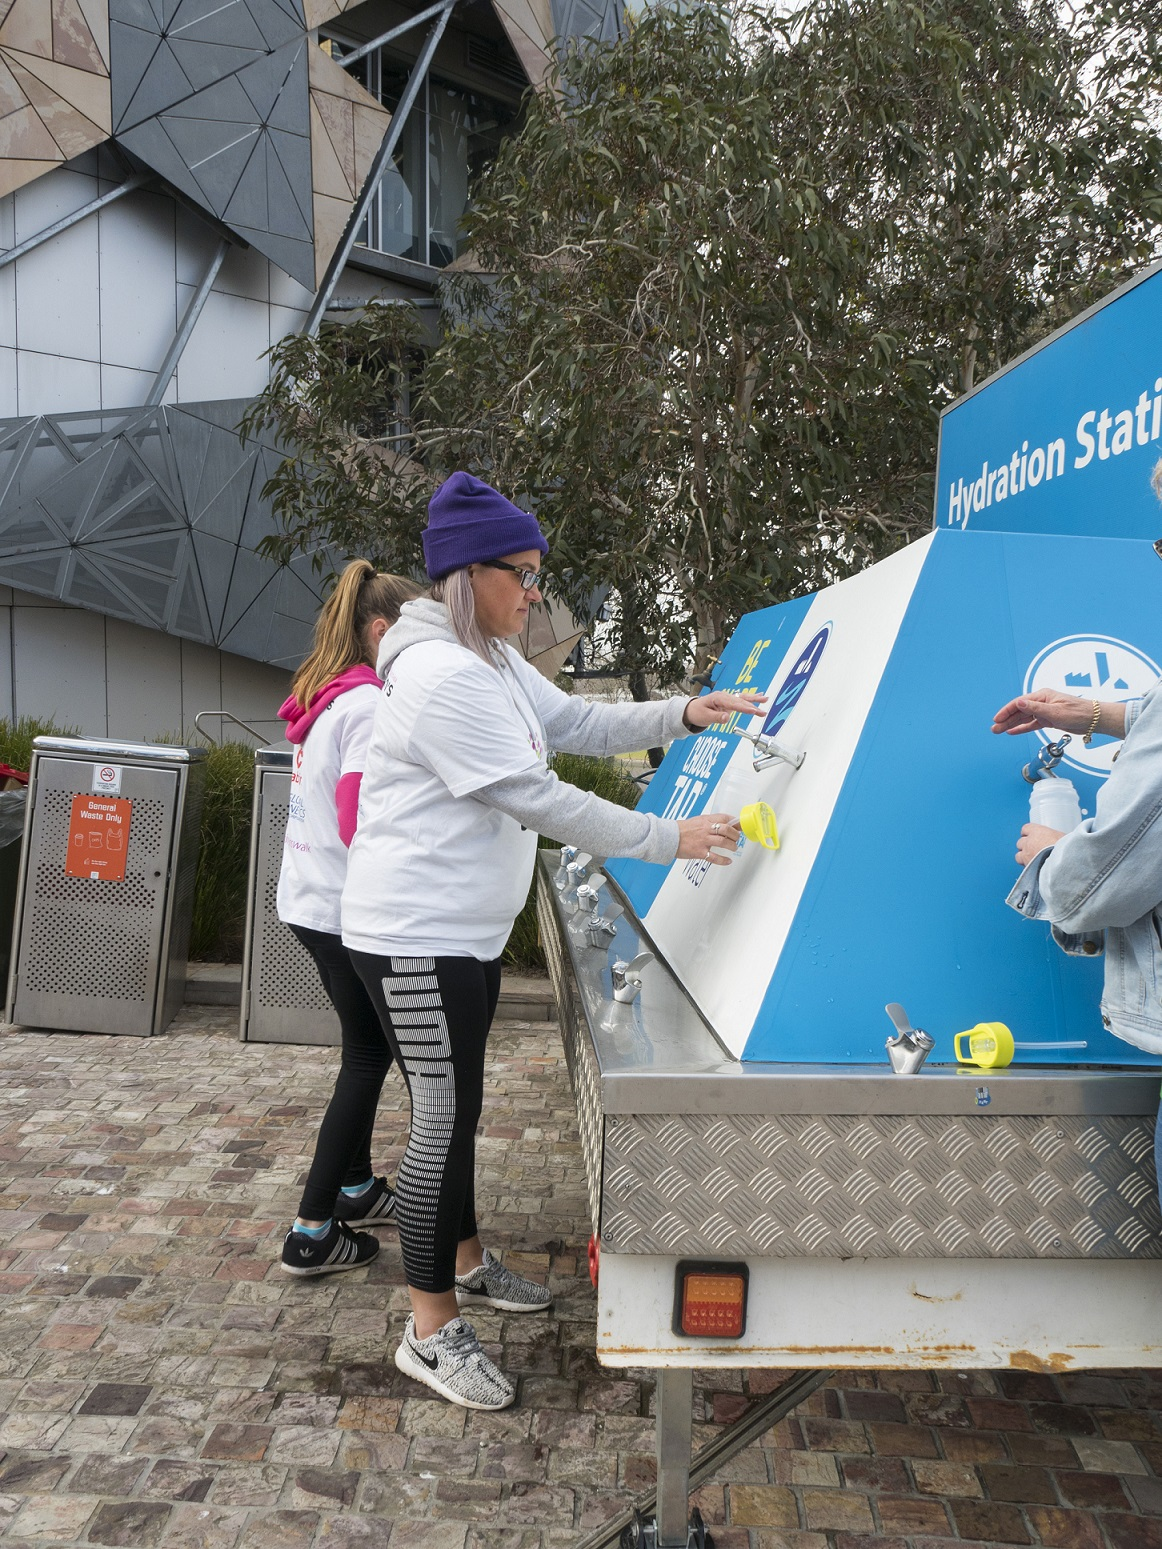 Photo of two ladies refilling thier water bottle with tap water from a water bubbler trailer.